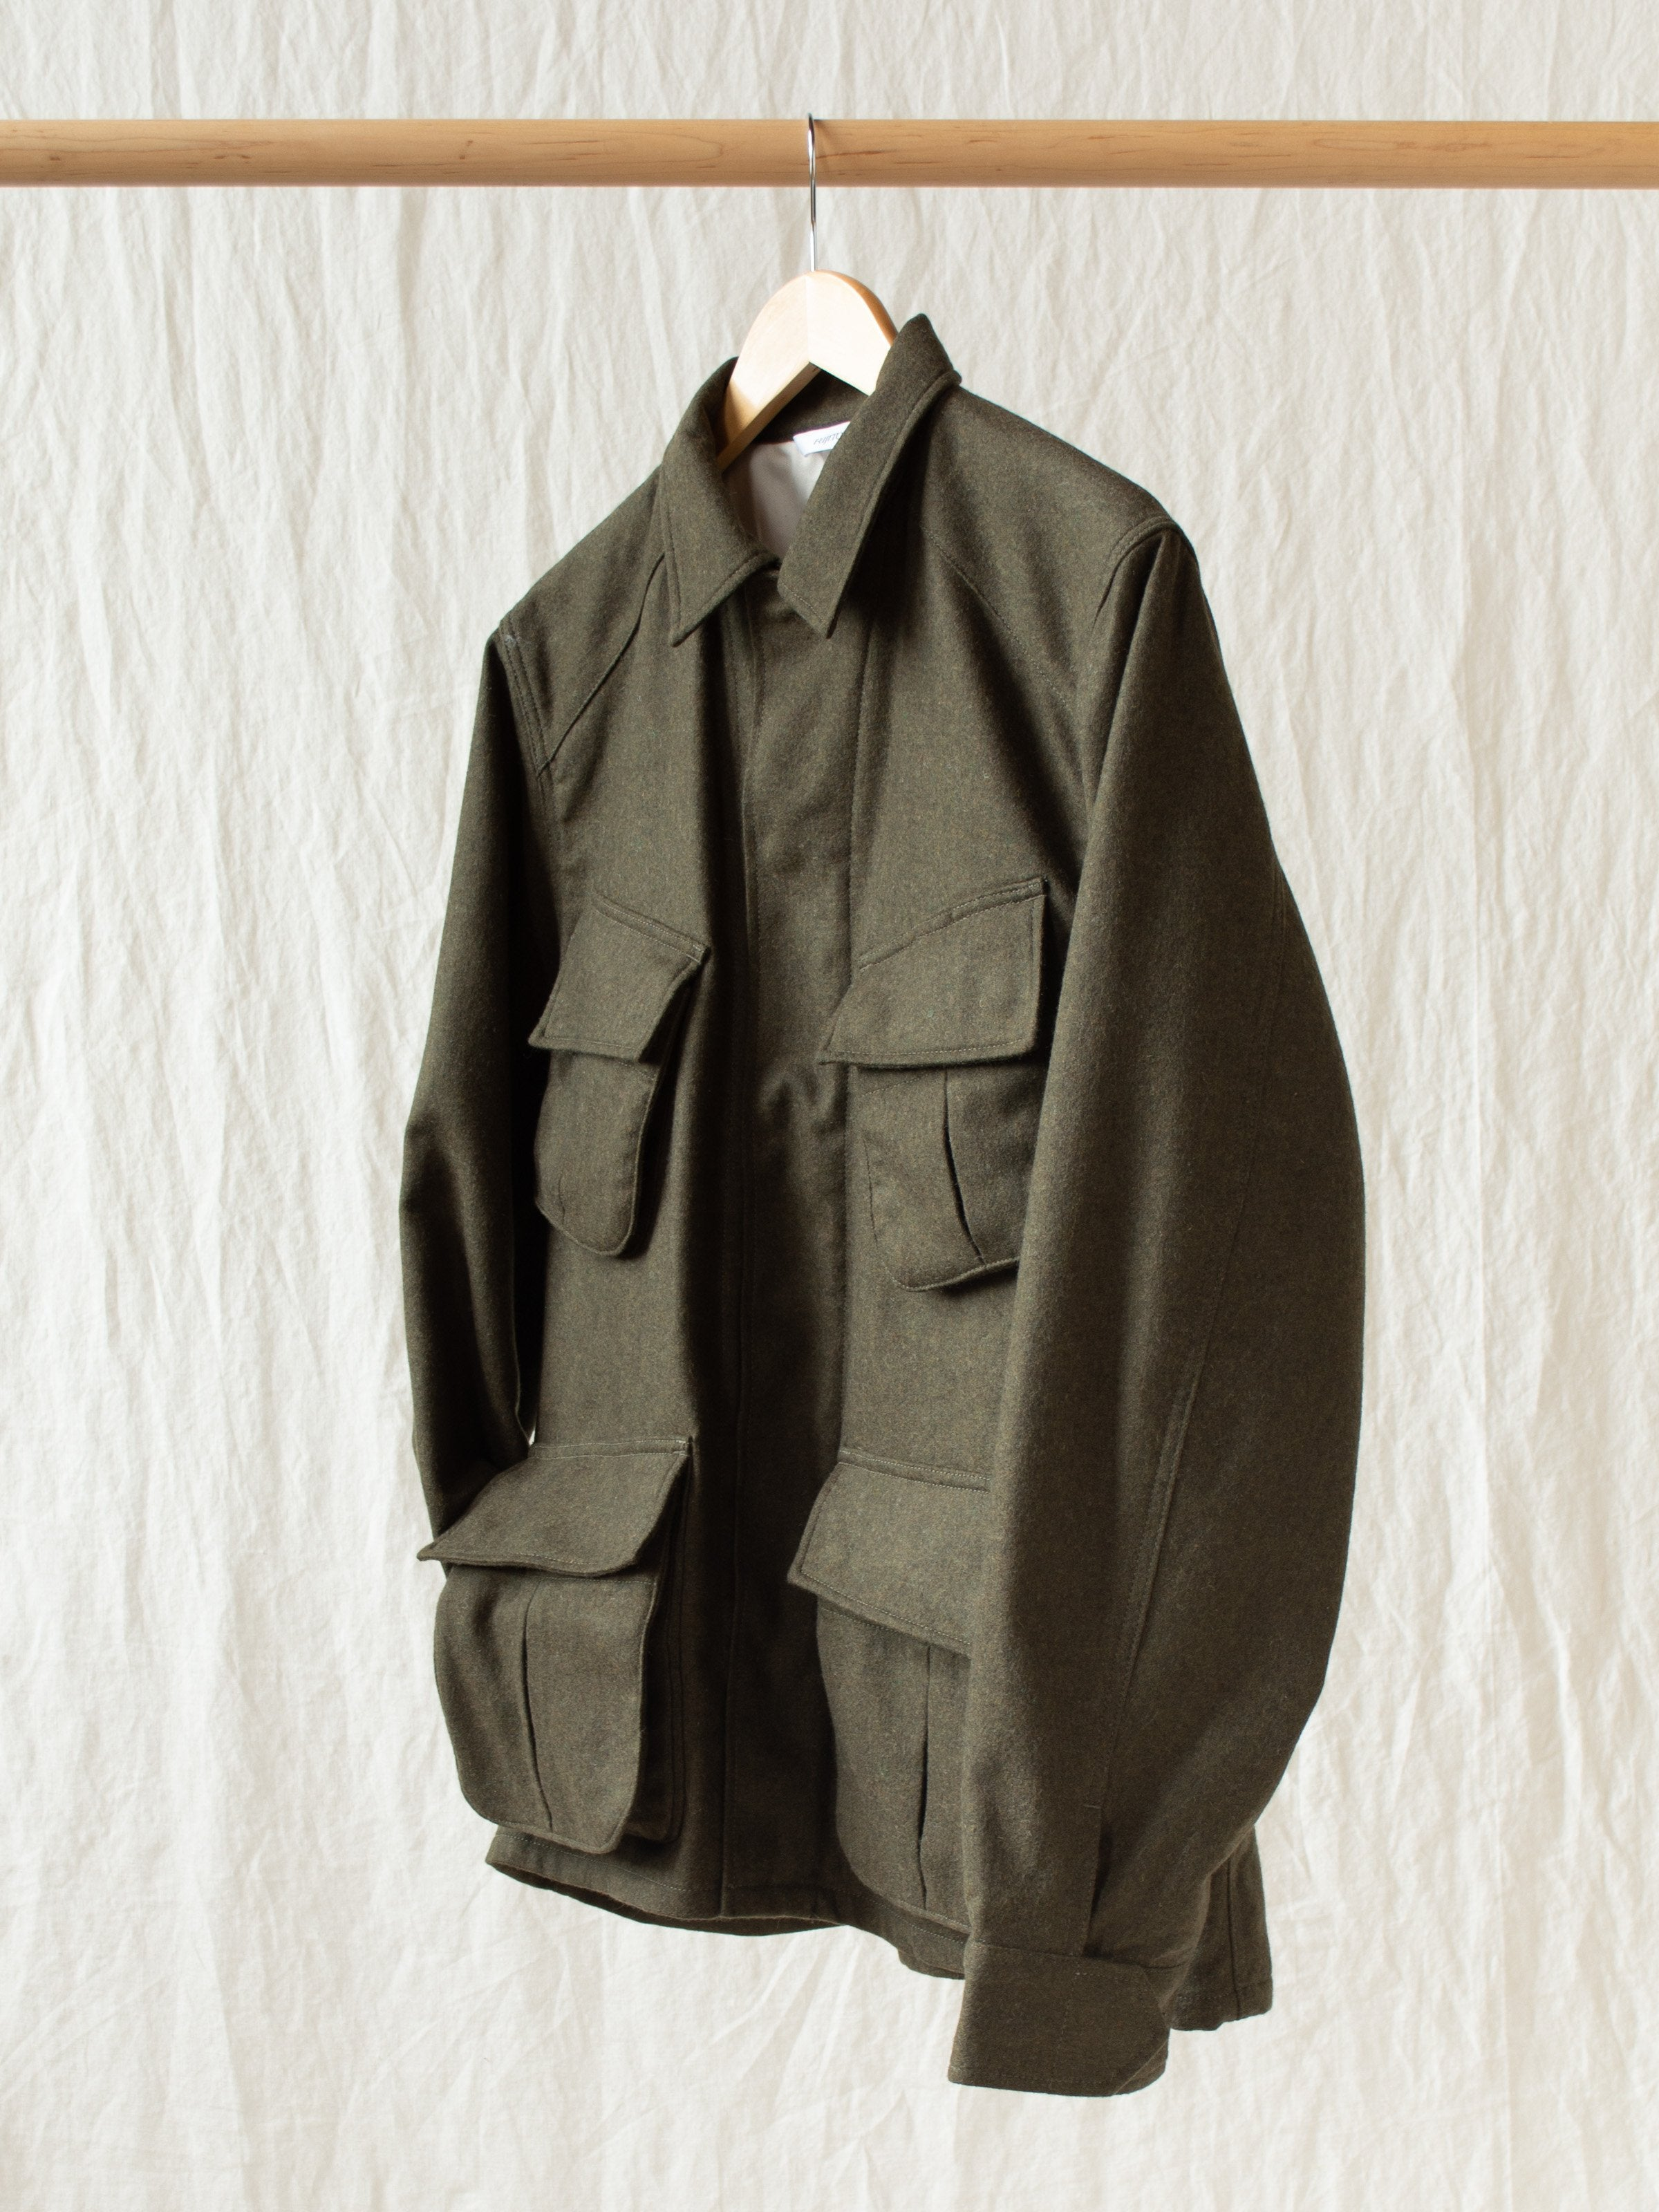 Namu Shop - Fujito Jungle Fatigue Jacket - Khaki